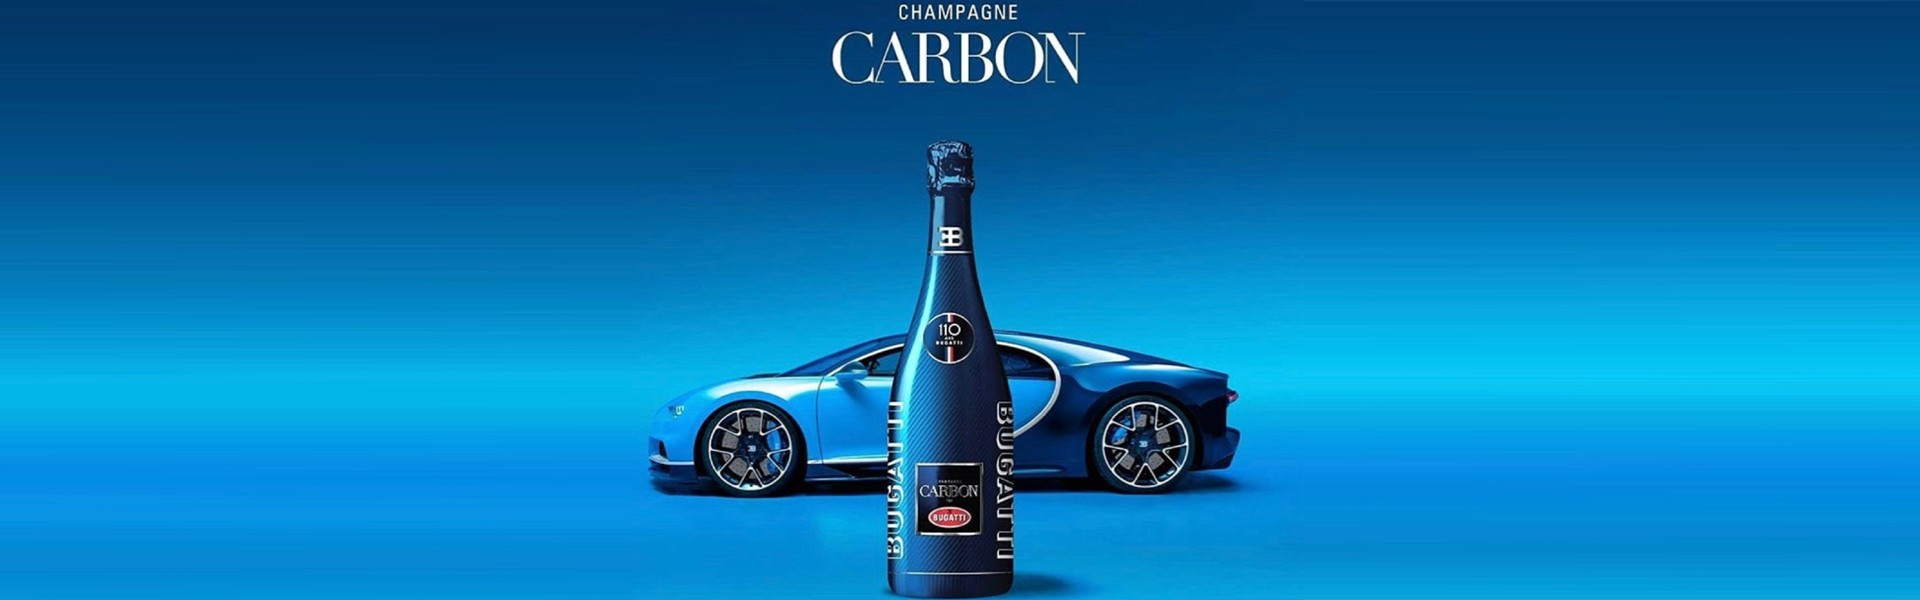 Champagne Carbon